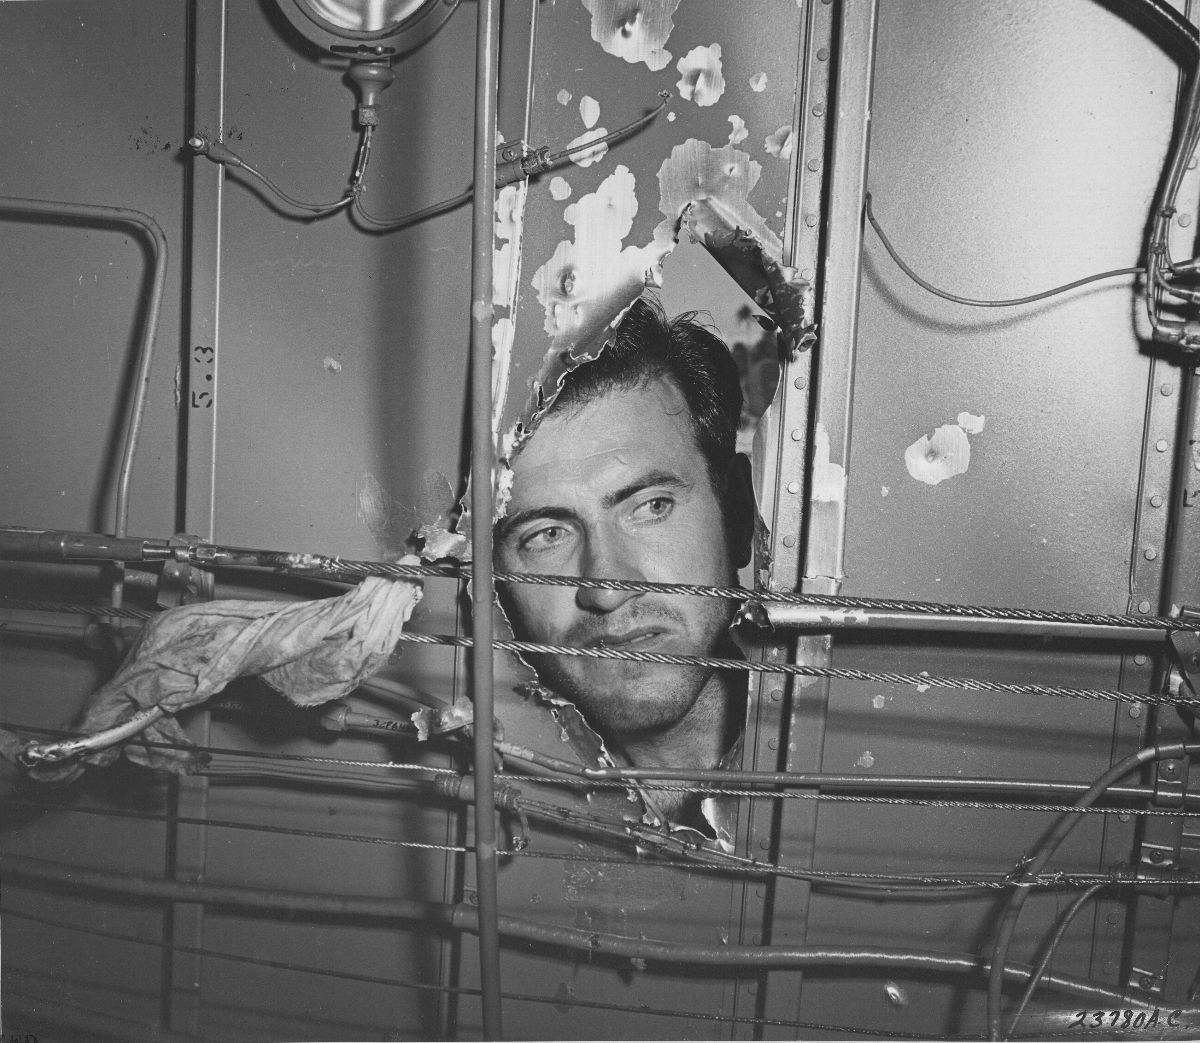 Photograph of Louis Zamperini examining a hole in his plane